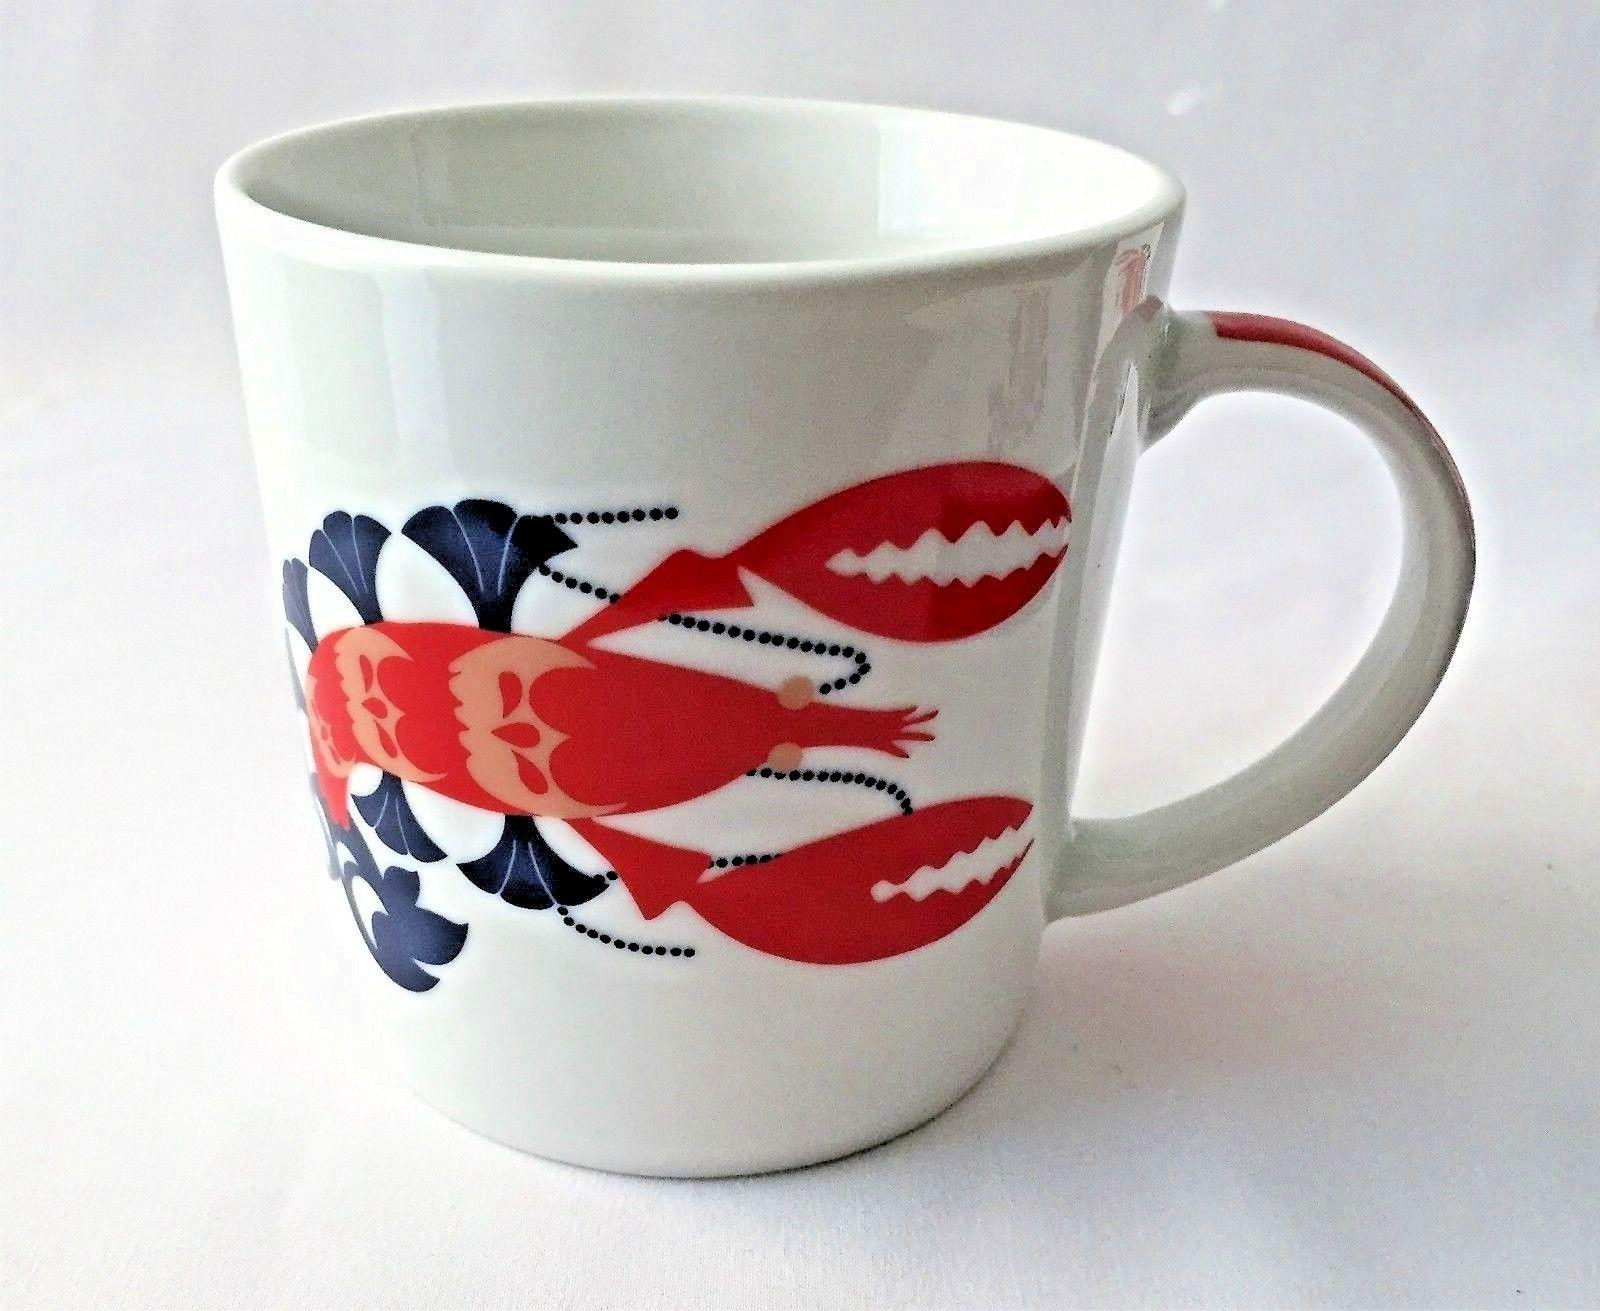 Thomas Porcelain Coffee Paperproducts Design